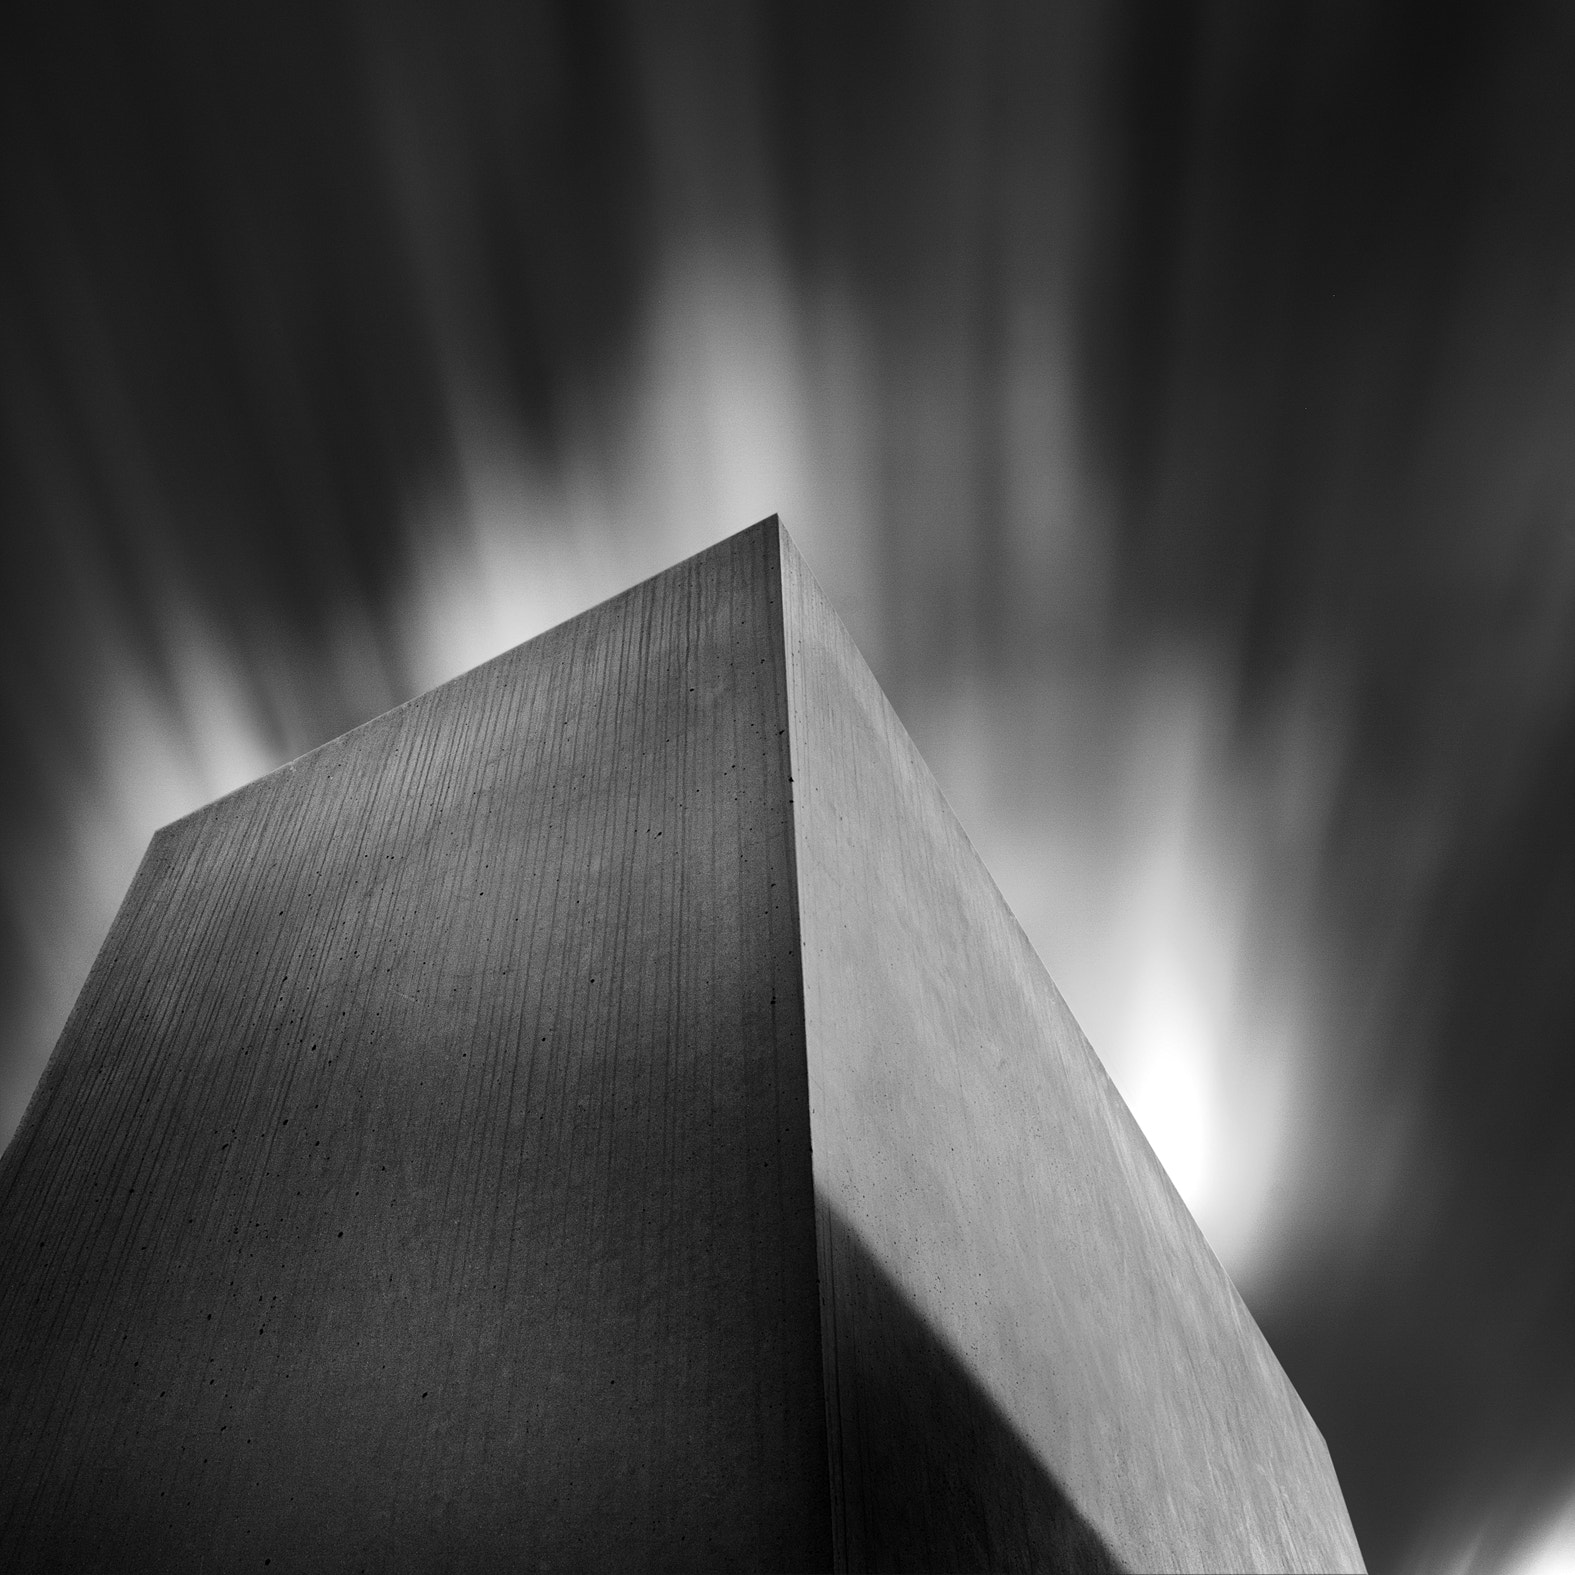 Photograph Holocaust Memorial 2 by Michael Diblicek on 500px